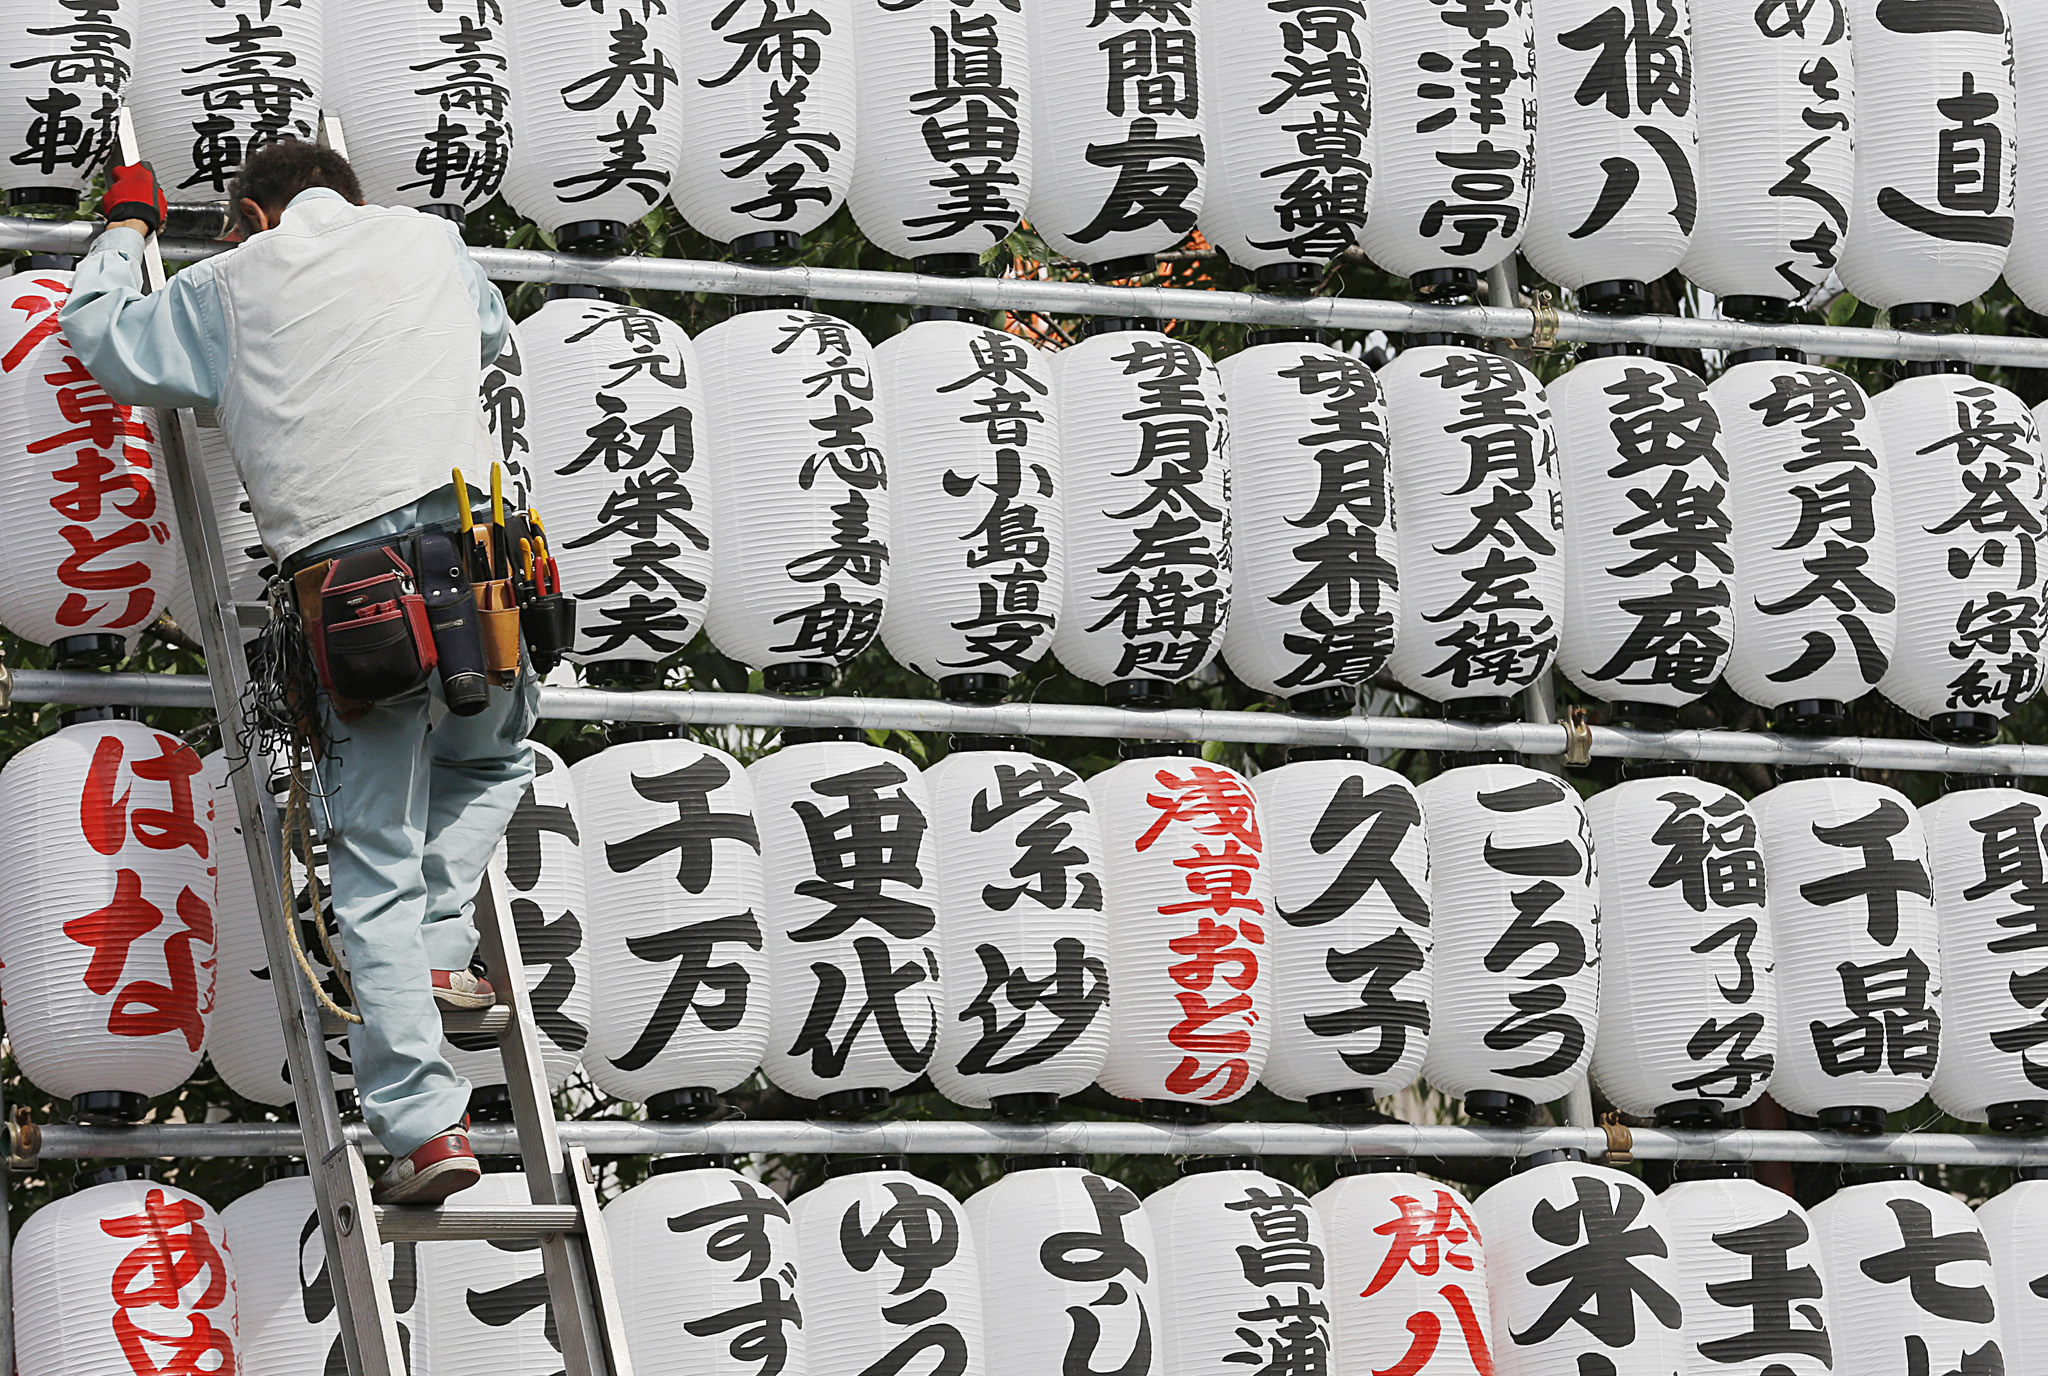 A worker goes down a ladder after adjusting a display of paper lanterns at Sensoji temple at Asakusa traditional shopping district in Tokyo, Monday, May 19, 2014. The lanterns carry the names of Buddhist temple parishioners and other supporters who donated money to the temple. (AP Photo/Shizuo Kambayashi)